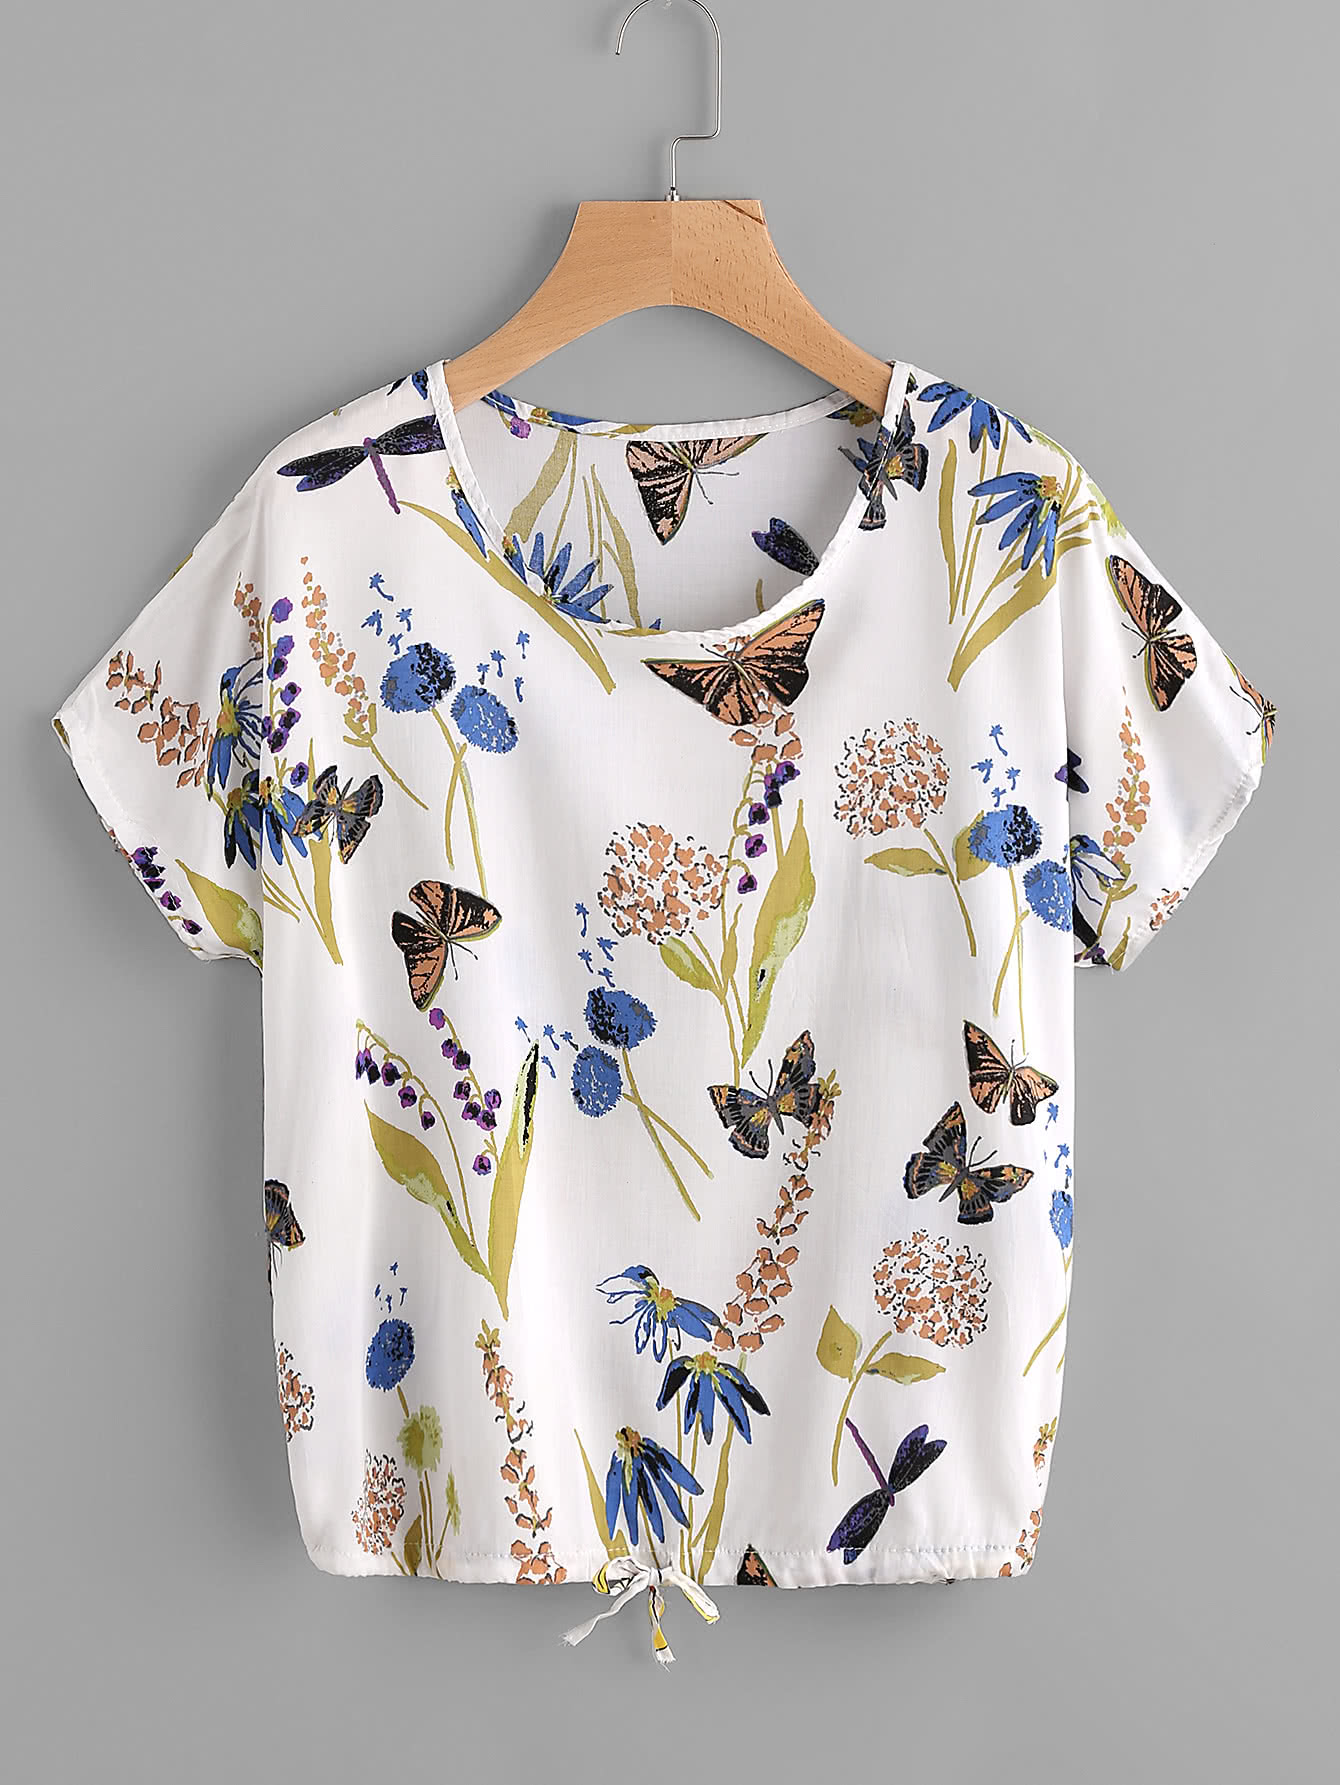 Butterfly Print Drawstring Top скатерть с кантом nepali lily 170х170 см p744 1815 1